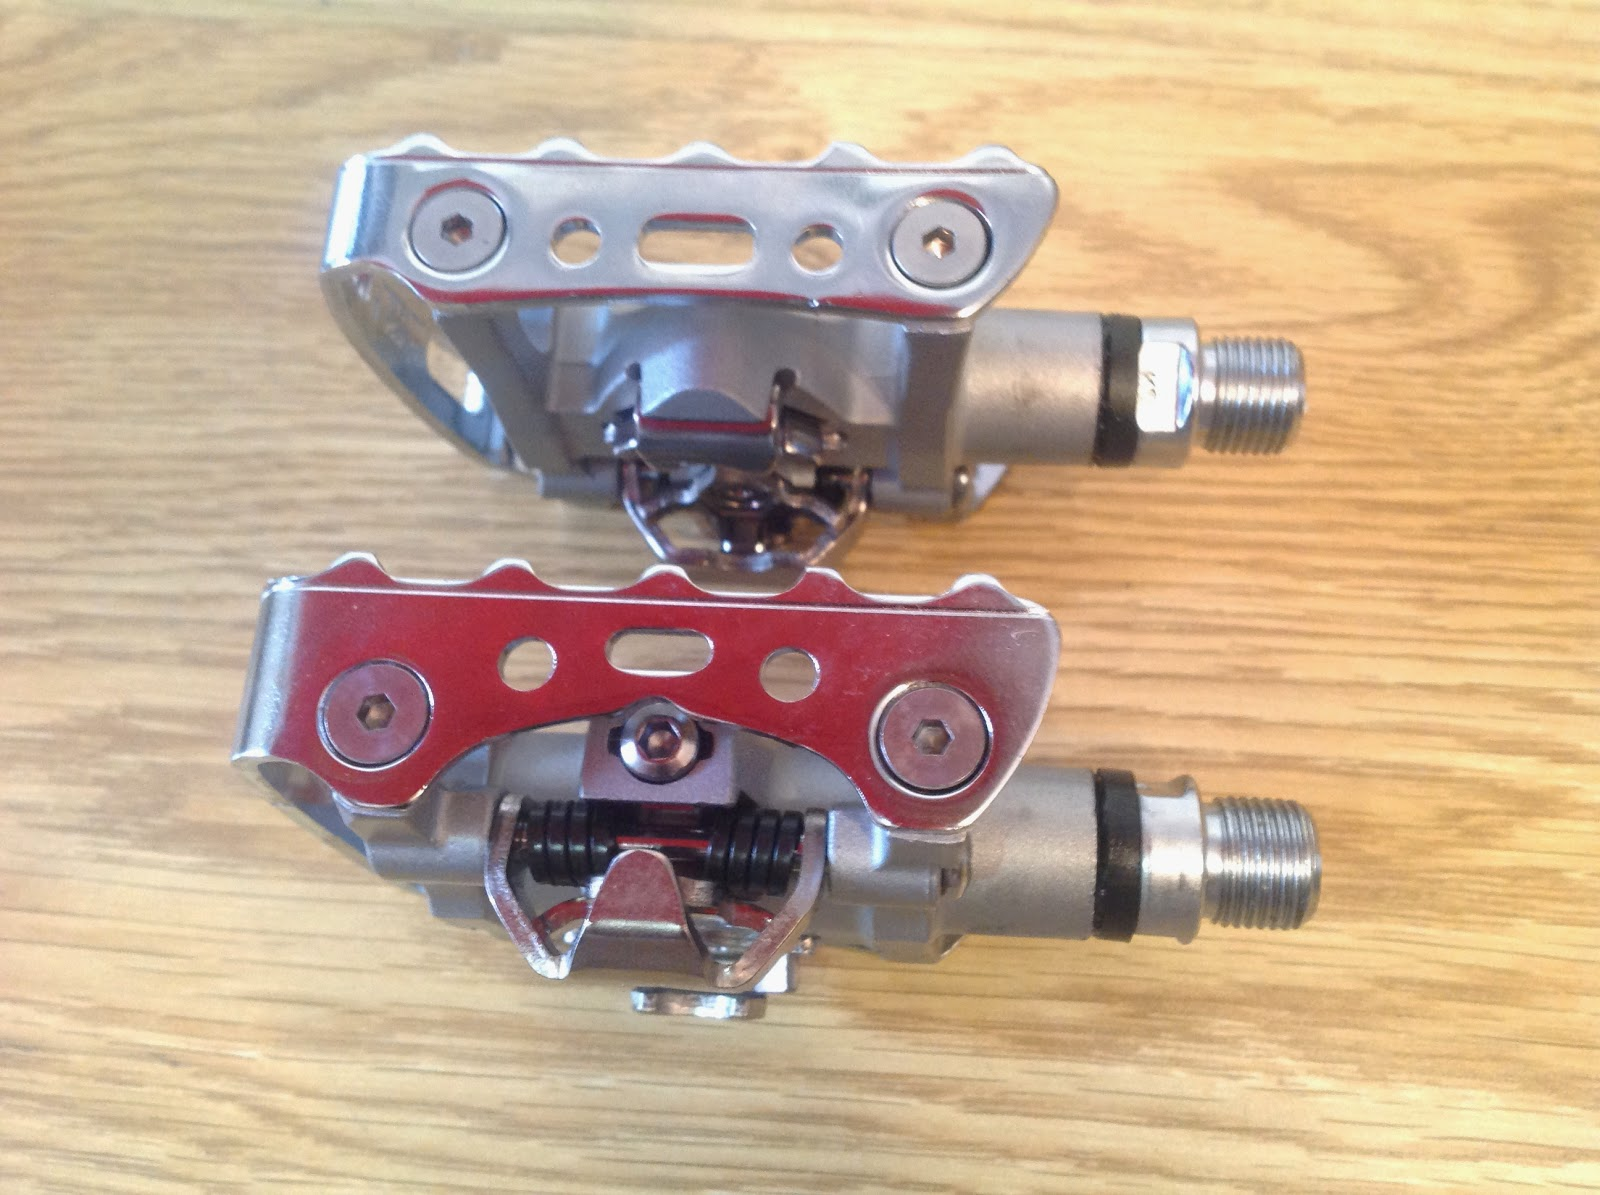 PRODUCT PRE-REVIEW: Shimano SPD Pedals PD-M324 from Probikekit.co.uk